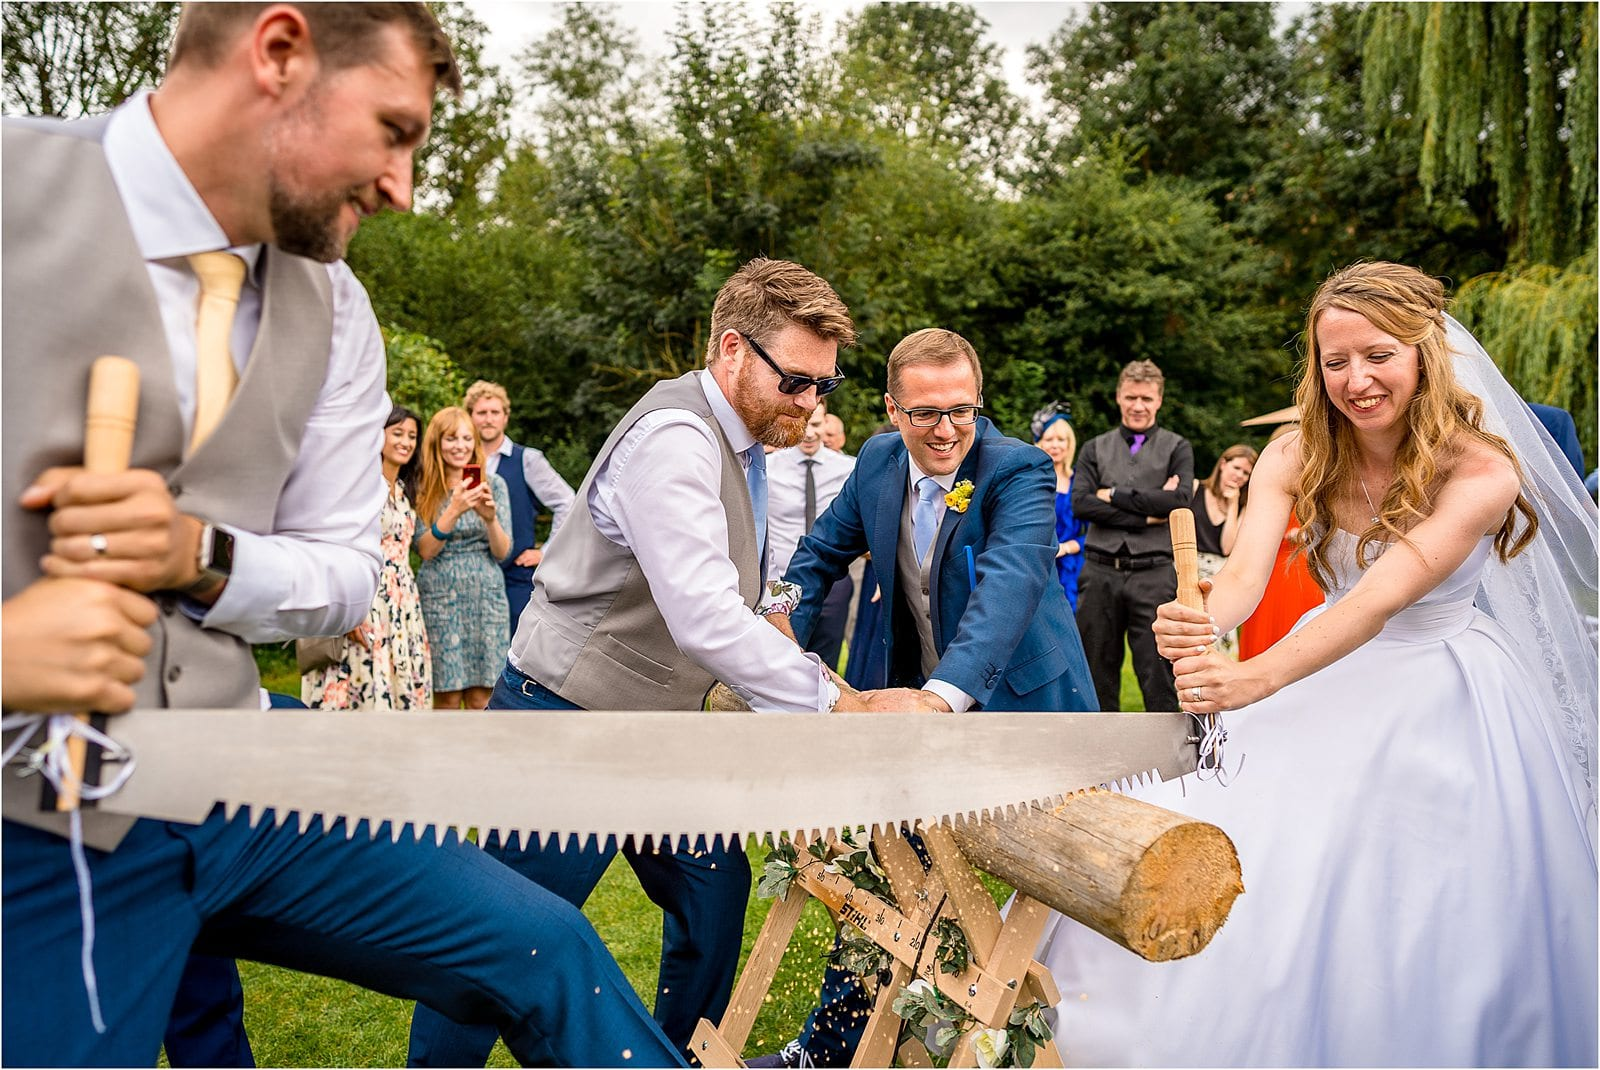 bride and groom sawing a log as a german tradition - best wedding photography in warwickshire 2019